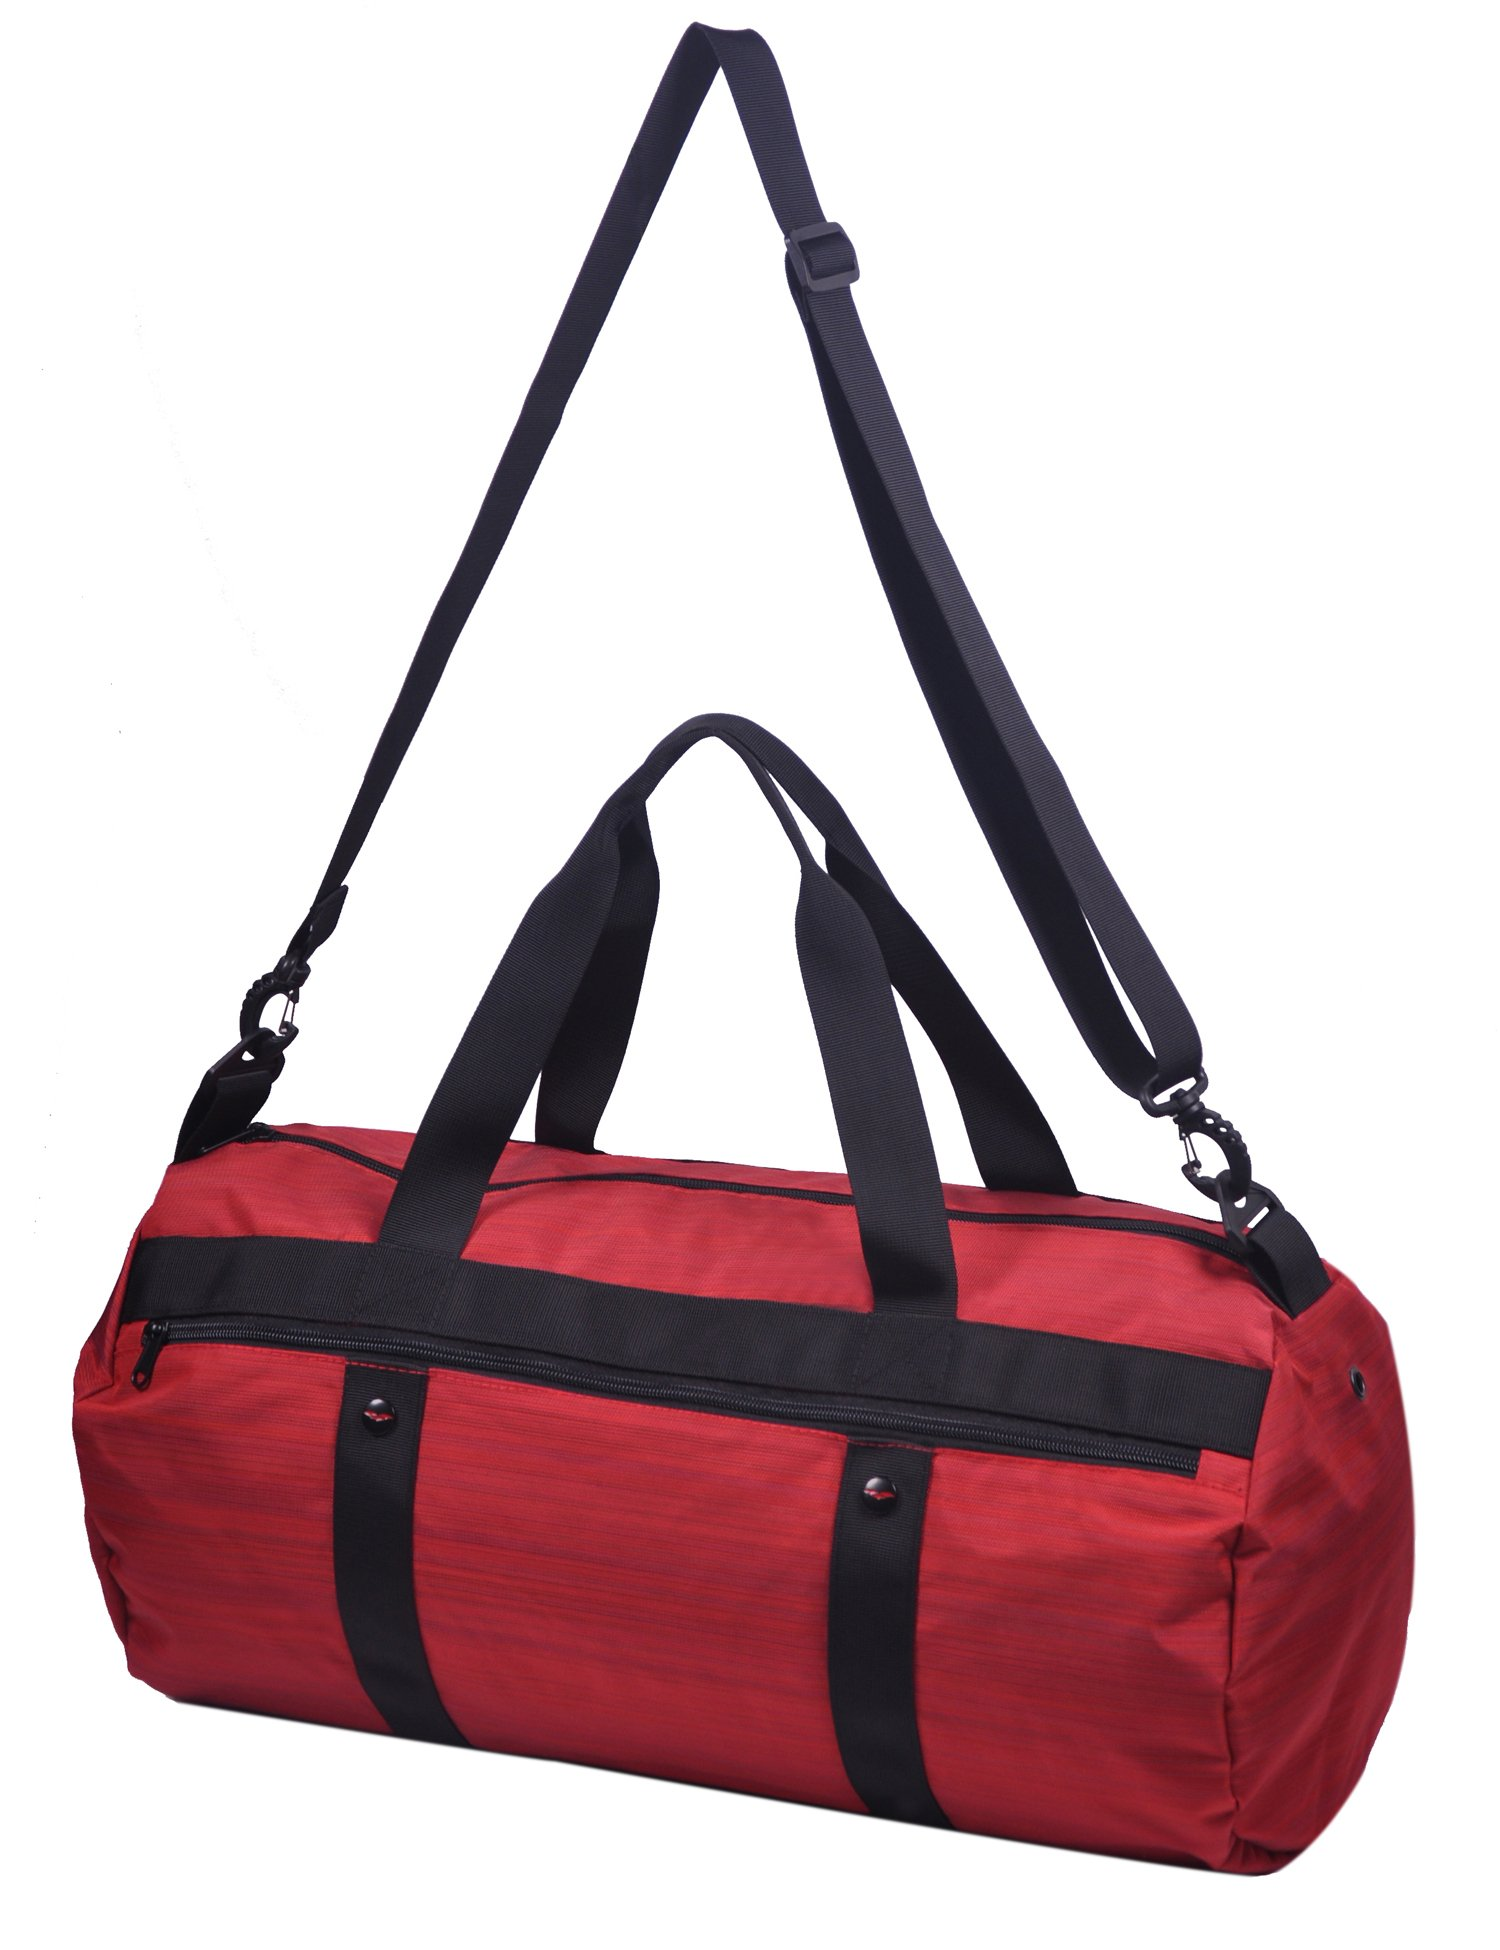 Galleon - MIER Gym Bag For Women Ladies Girls Red Duffel Bag With Shoe  Compartment f4a8b34a8cf13